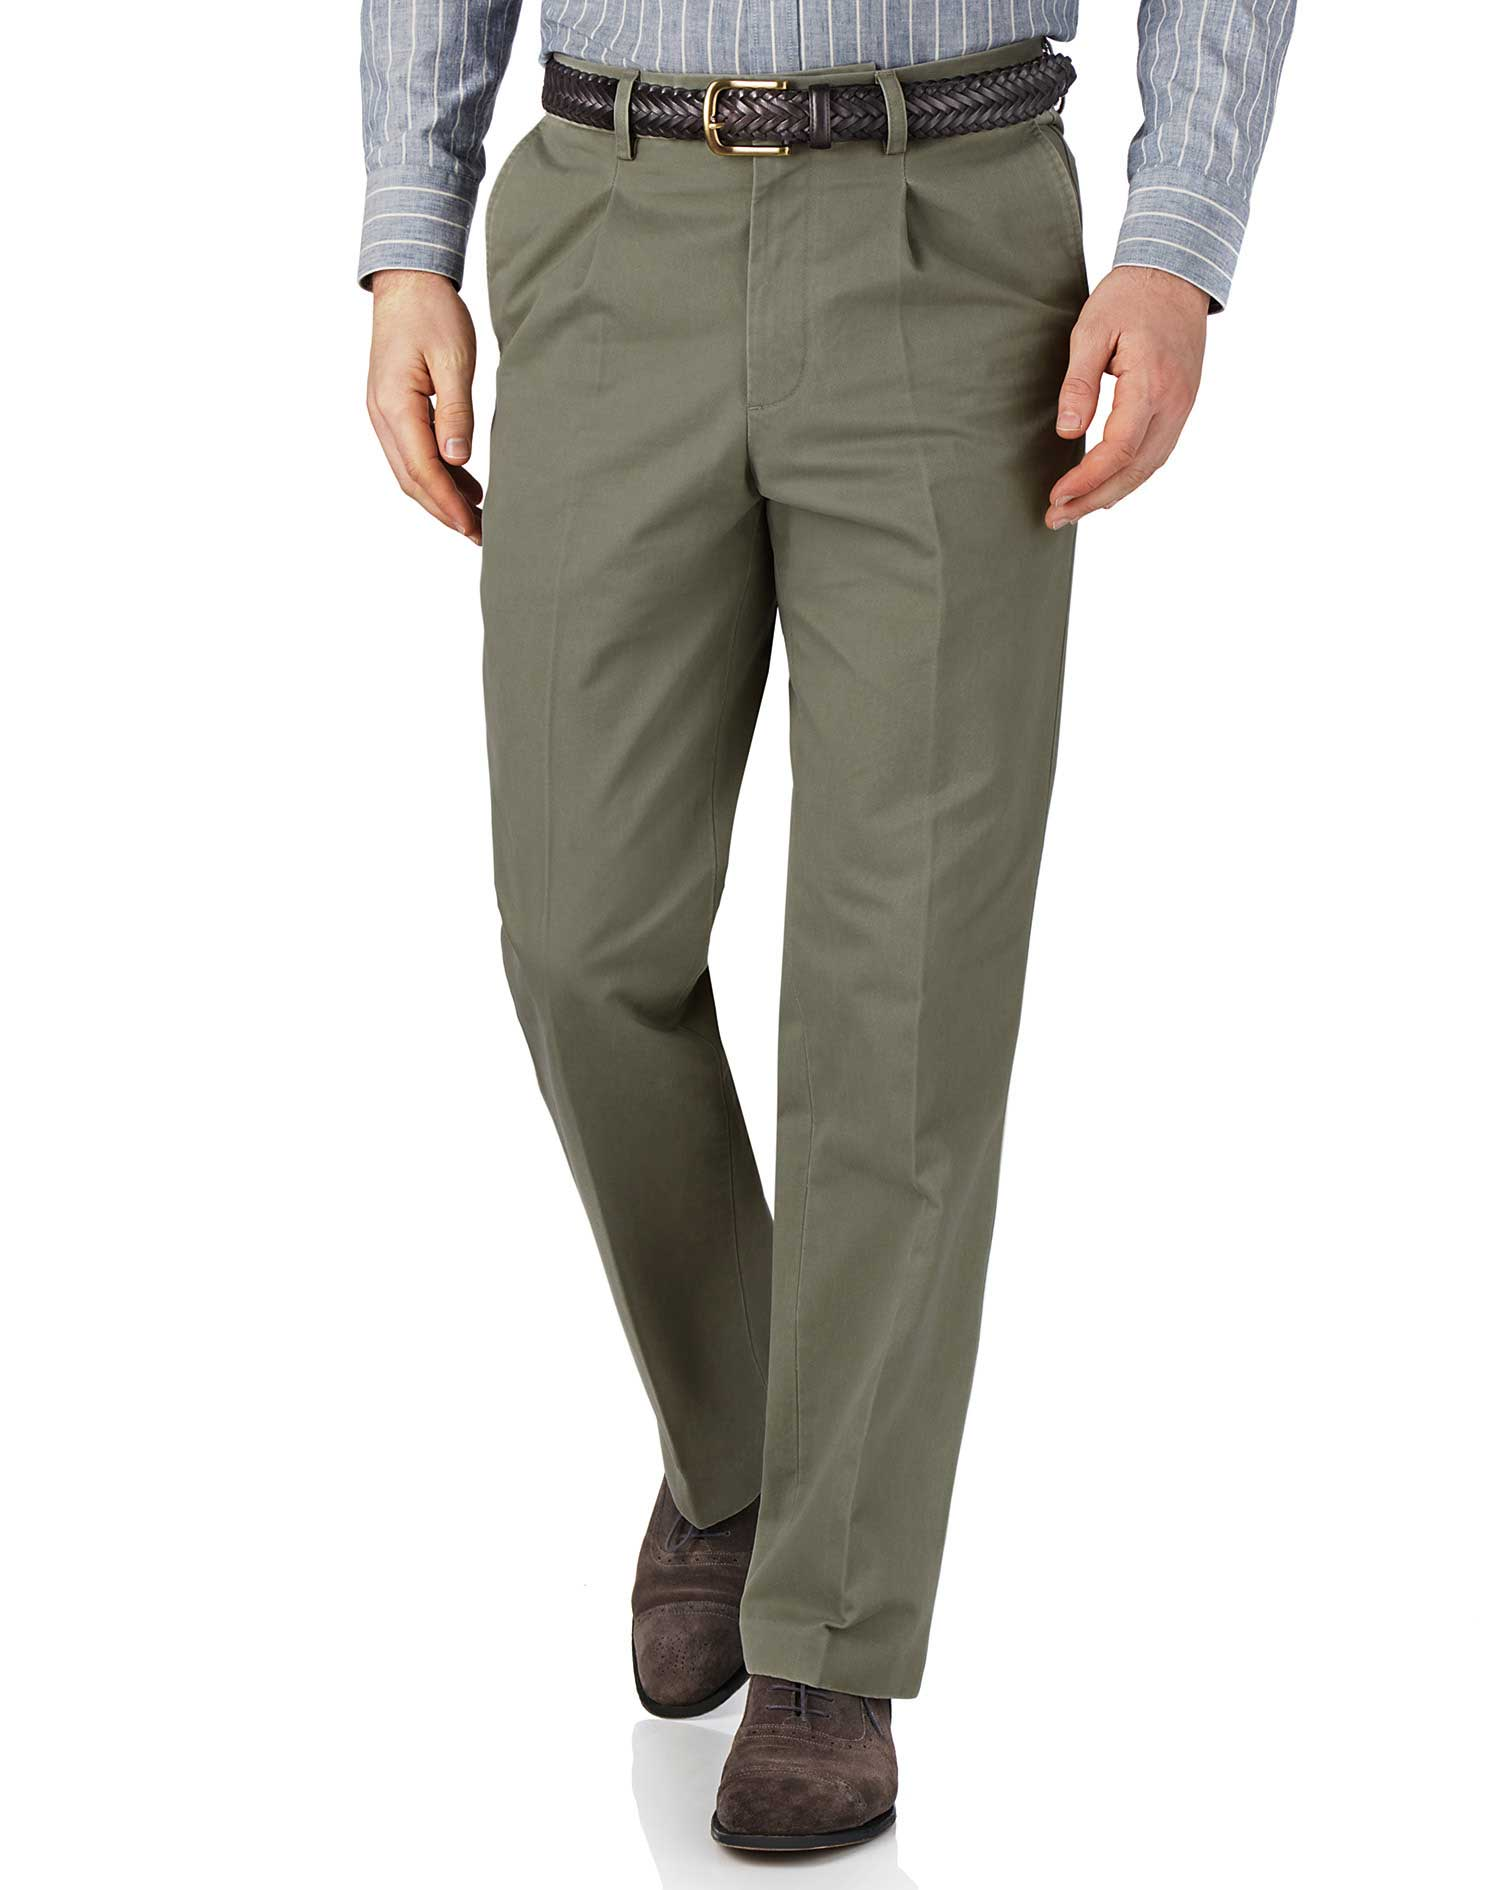 Light Green Classic Fit Single Pleat Cotton Chino Trousers Size W34 L30 by Charles Tyrwhitt